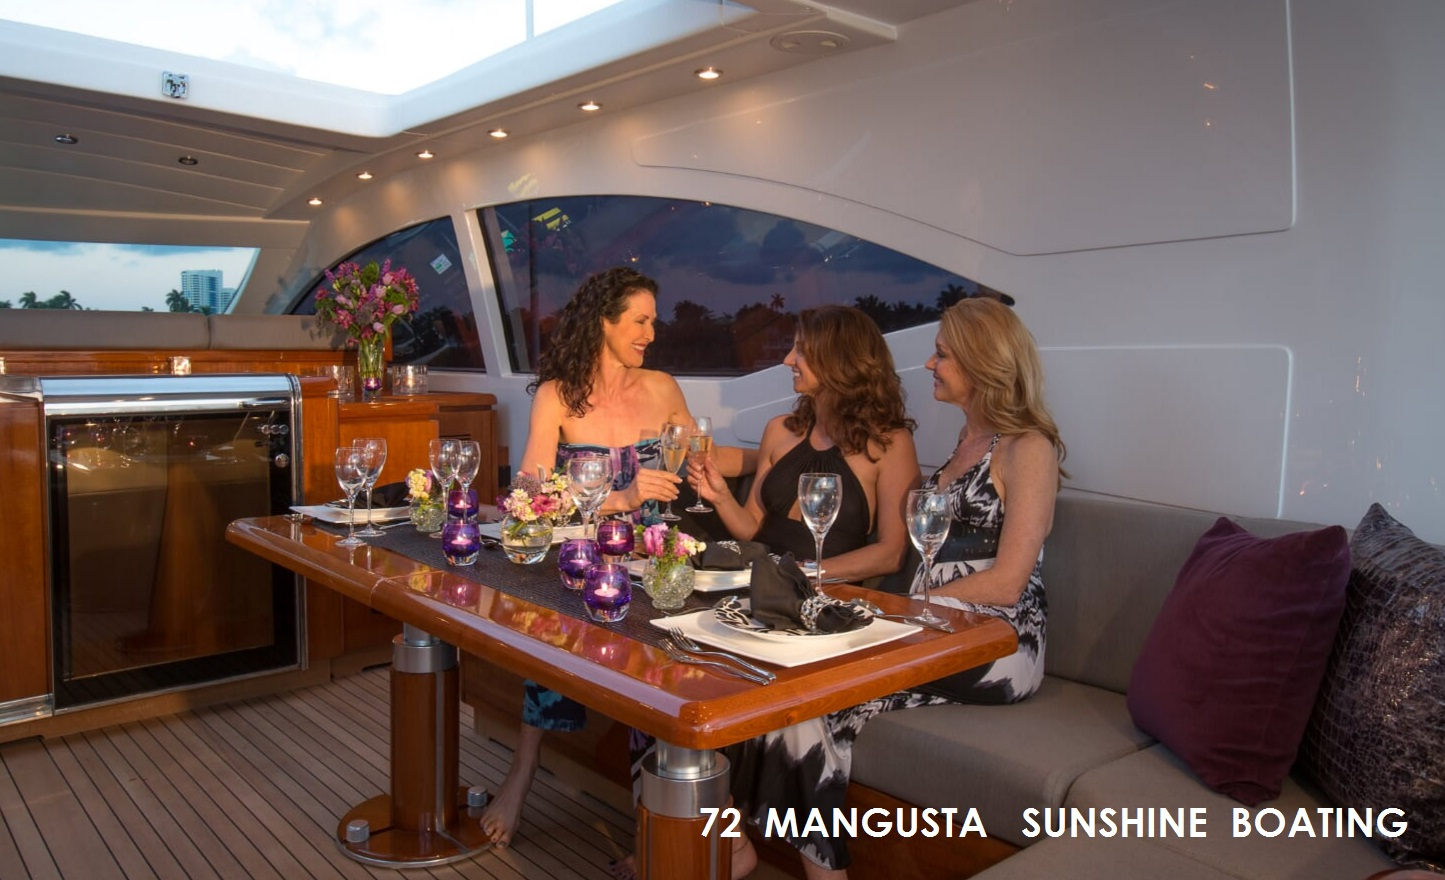 sunshine-boating-manusta-72-l